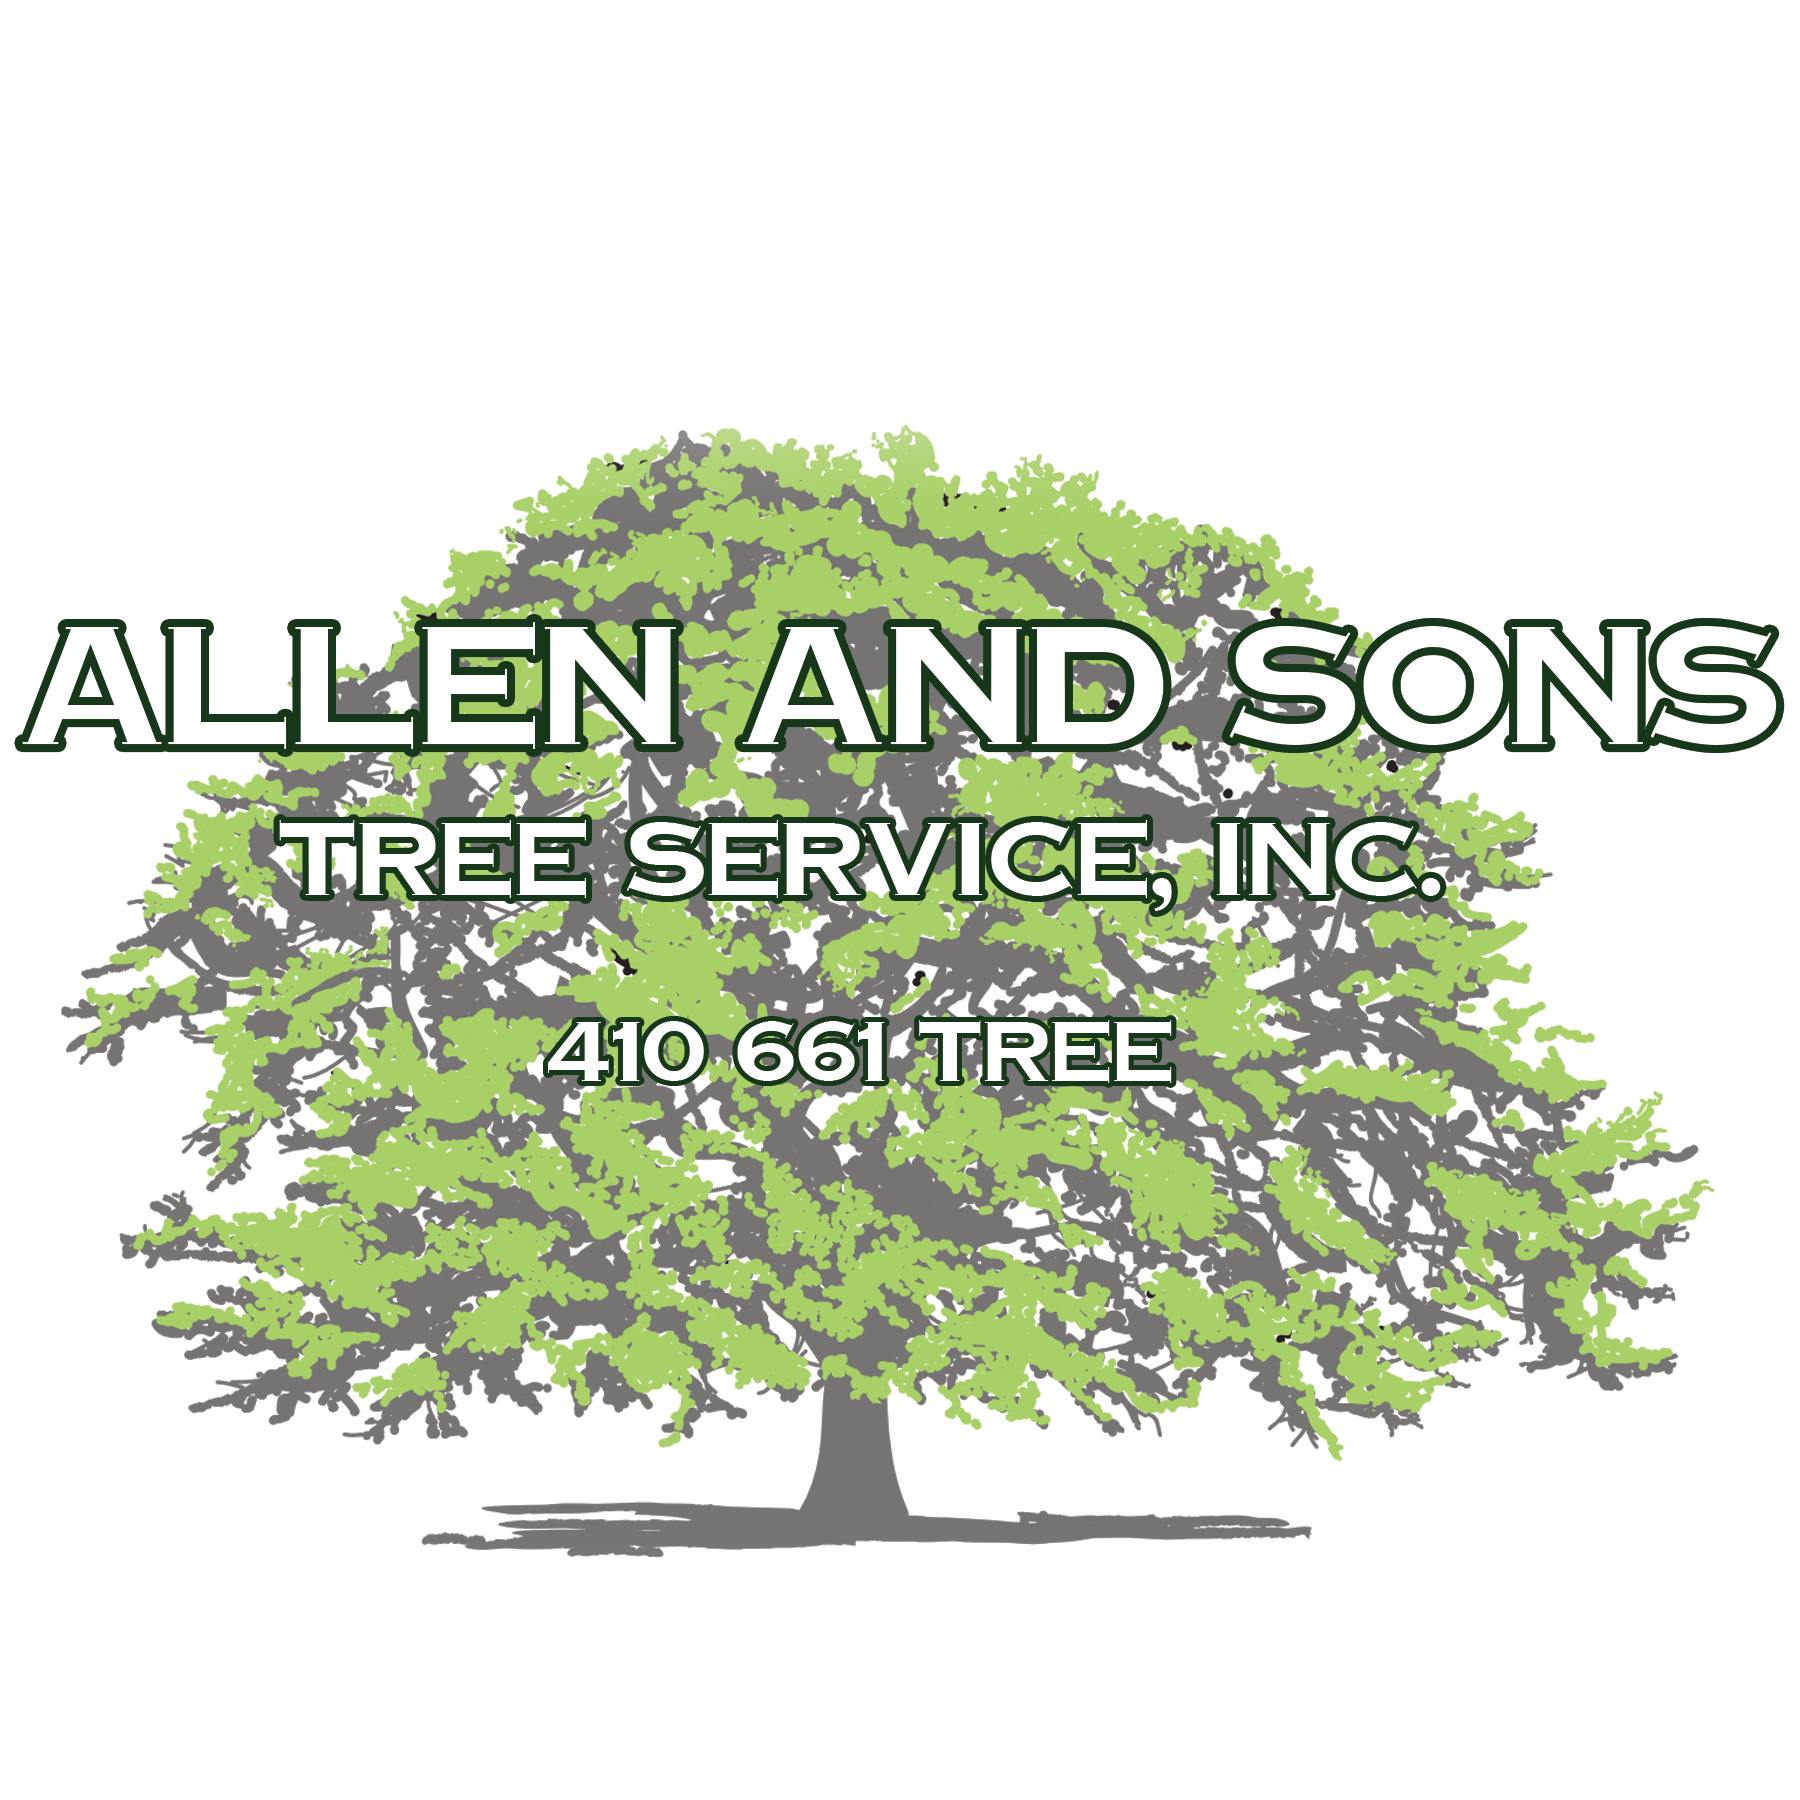 Allen and Sons Tree Service, Inc.